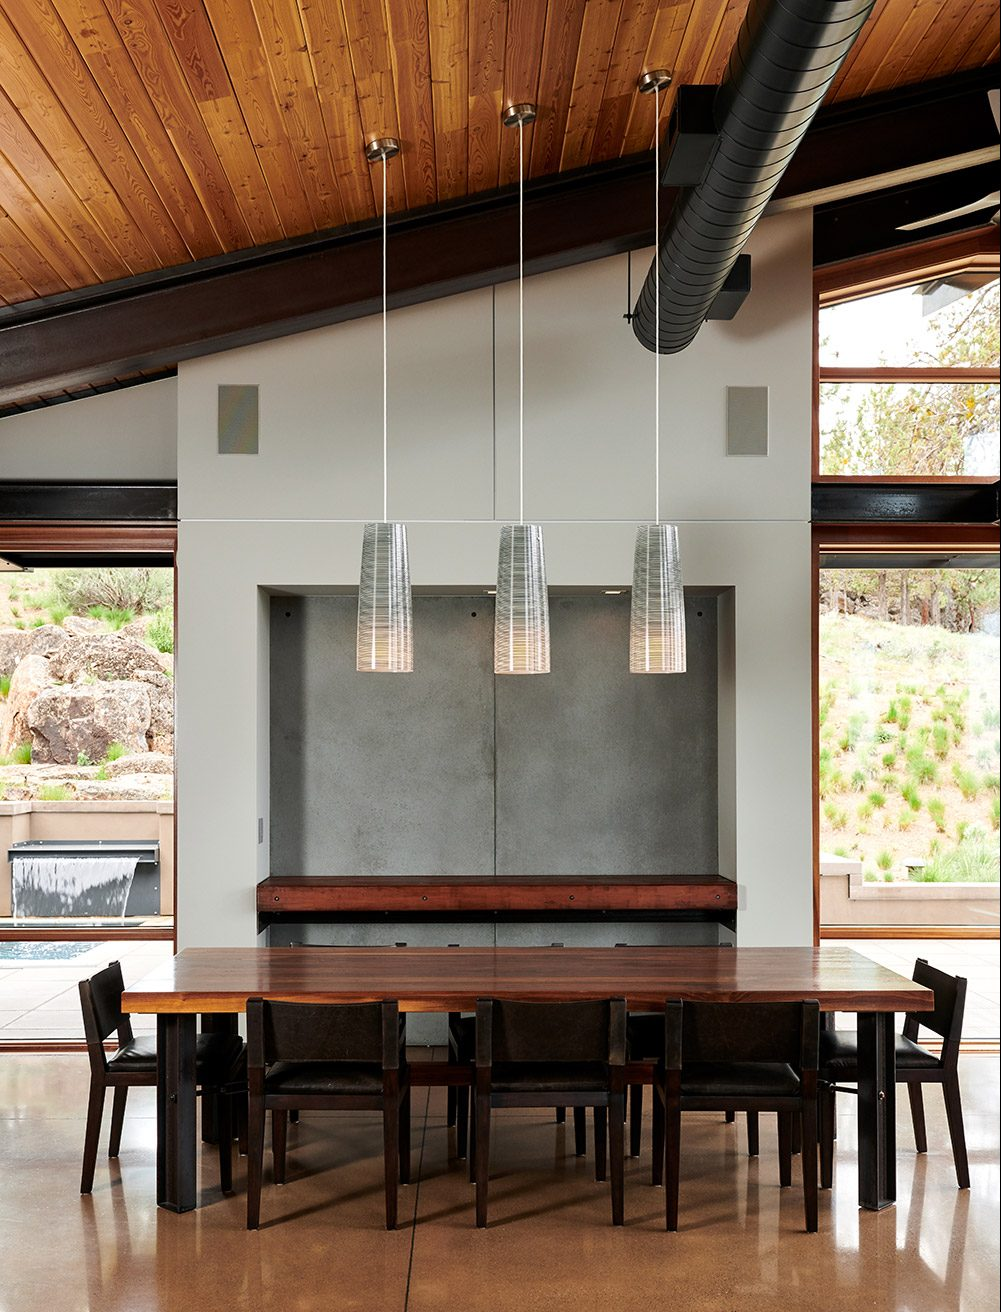 case-study-2-well-lit-lodge-dining-room